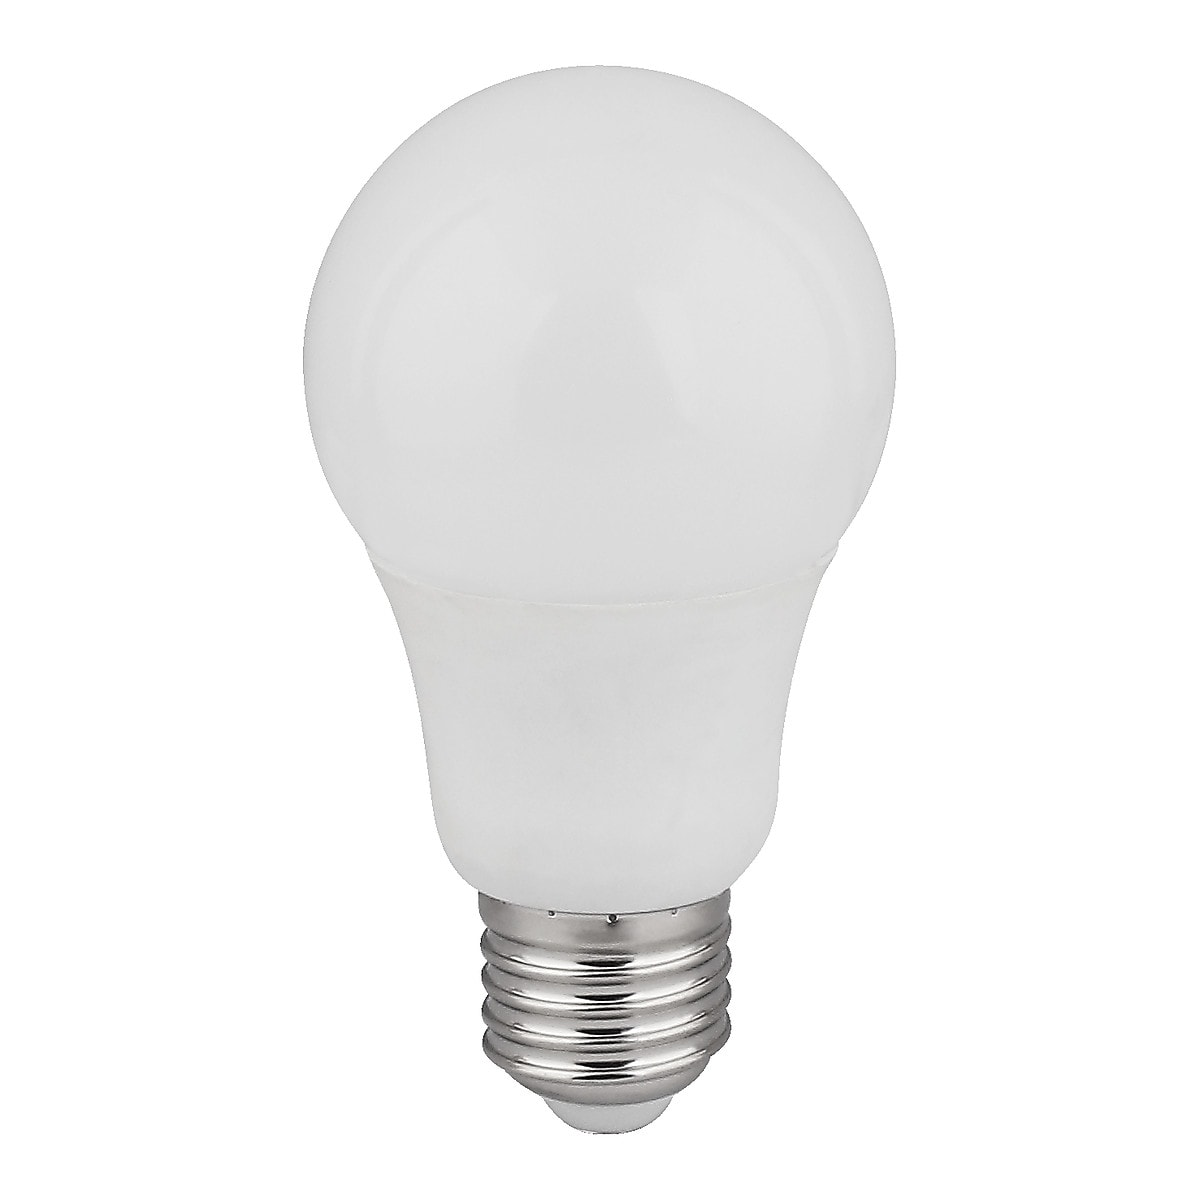 V-light lavvolts LED-pære E27